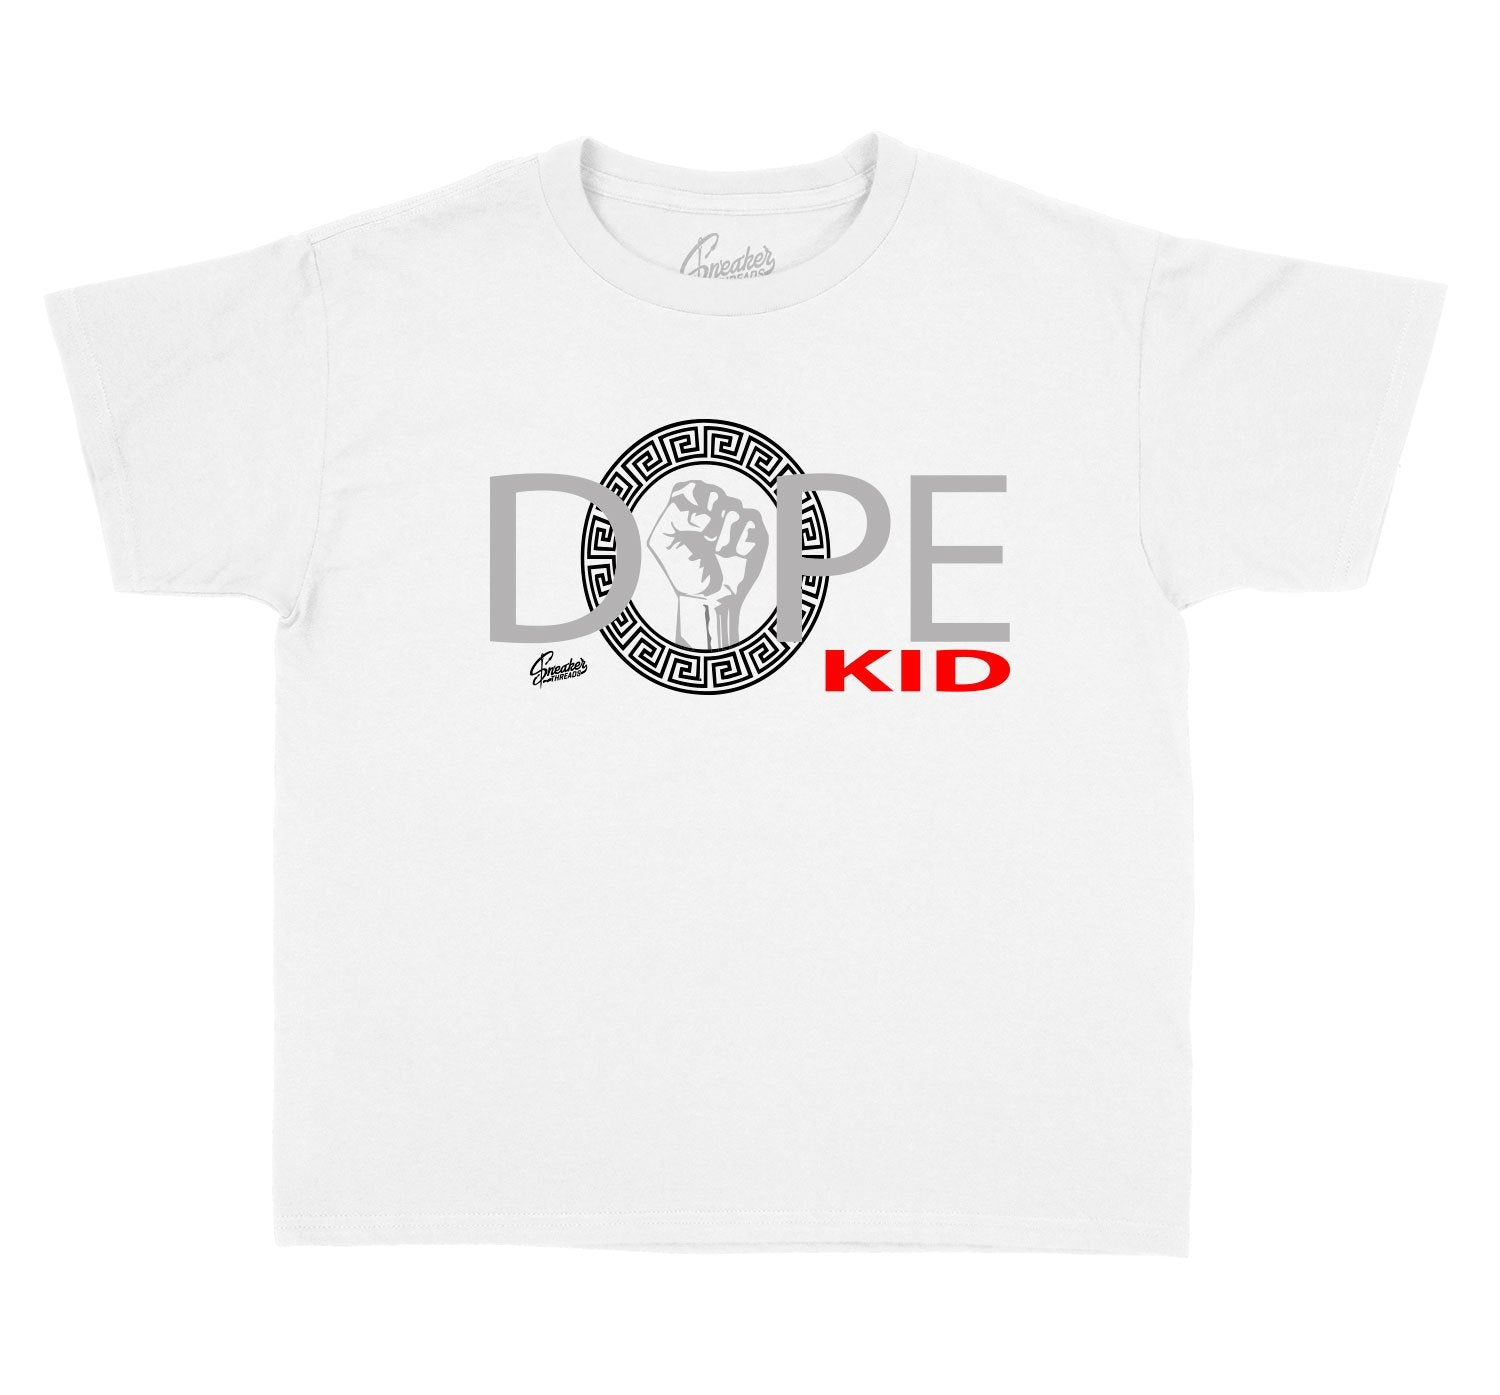 Shirt collection made to match the kids Jordan 12 dark grey sneakers